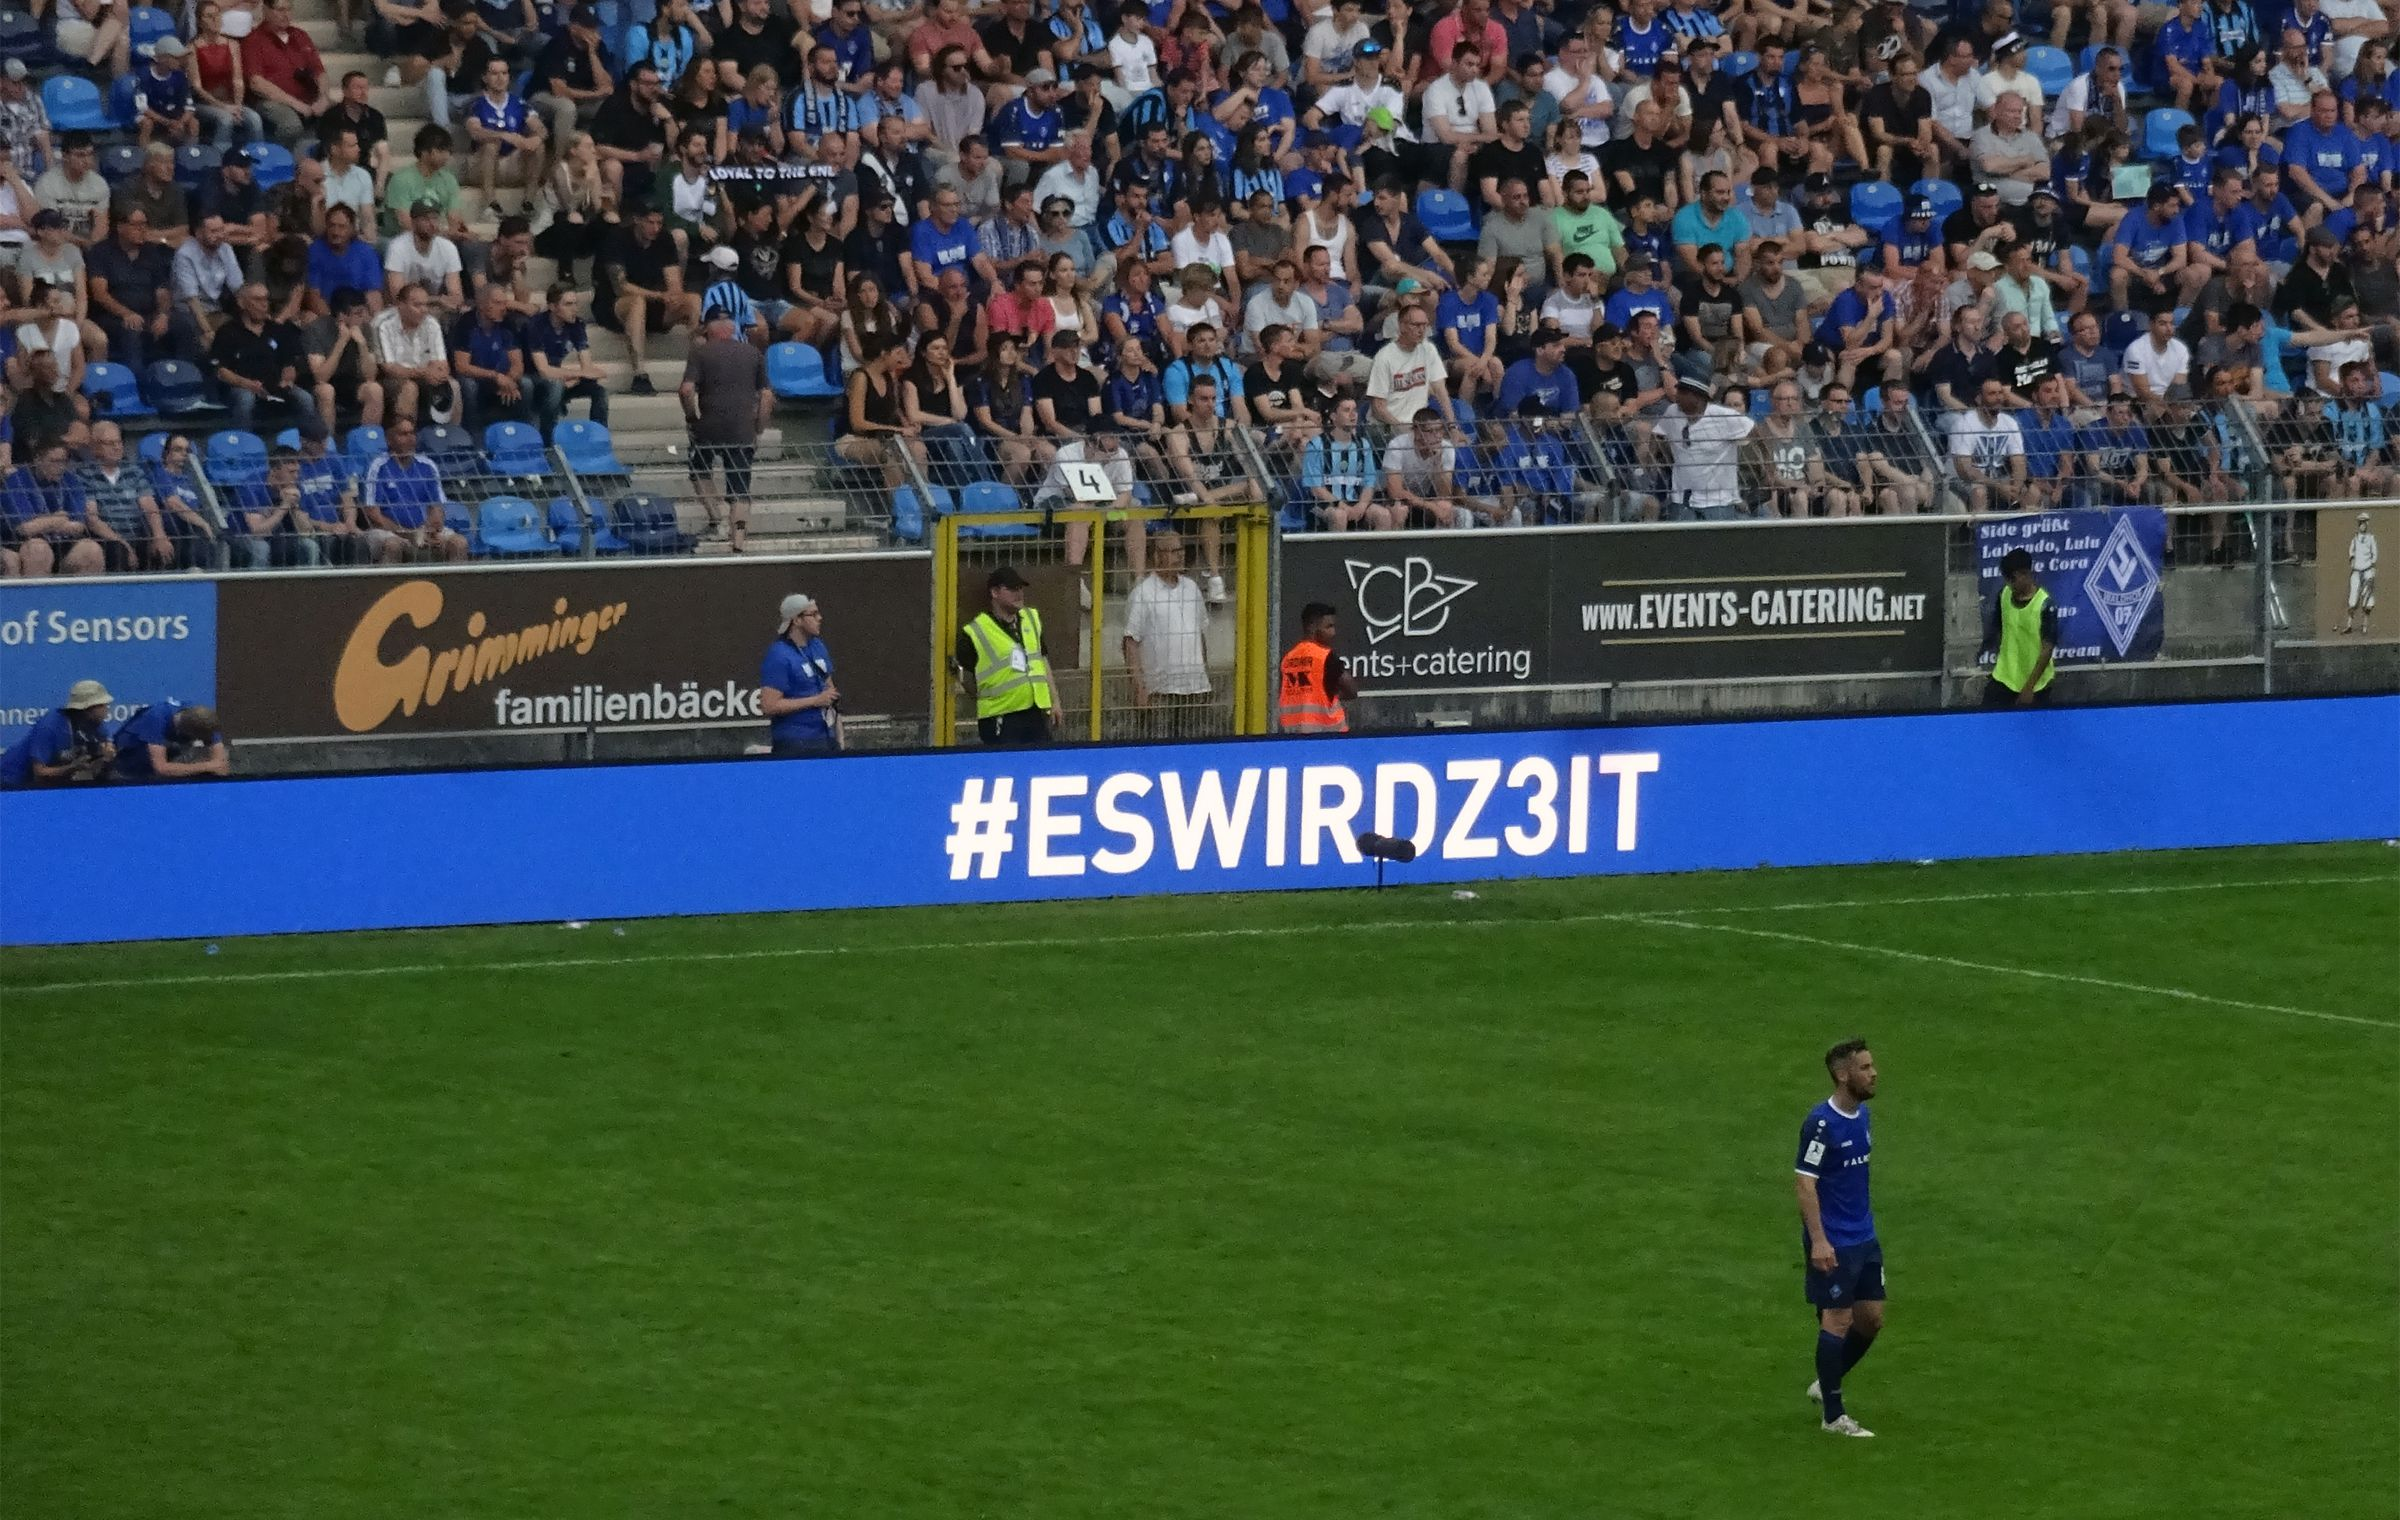 #ESWIRDZ3IT – Nö!